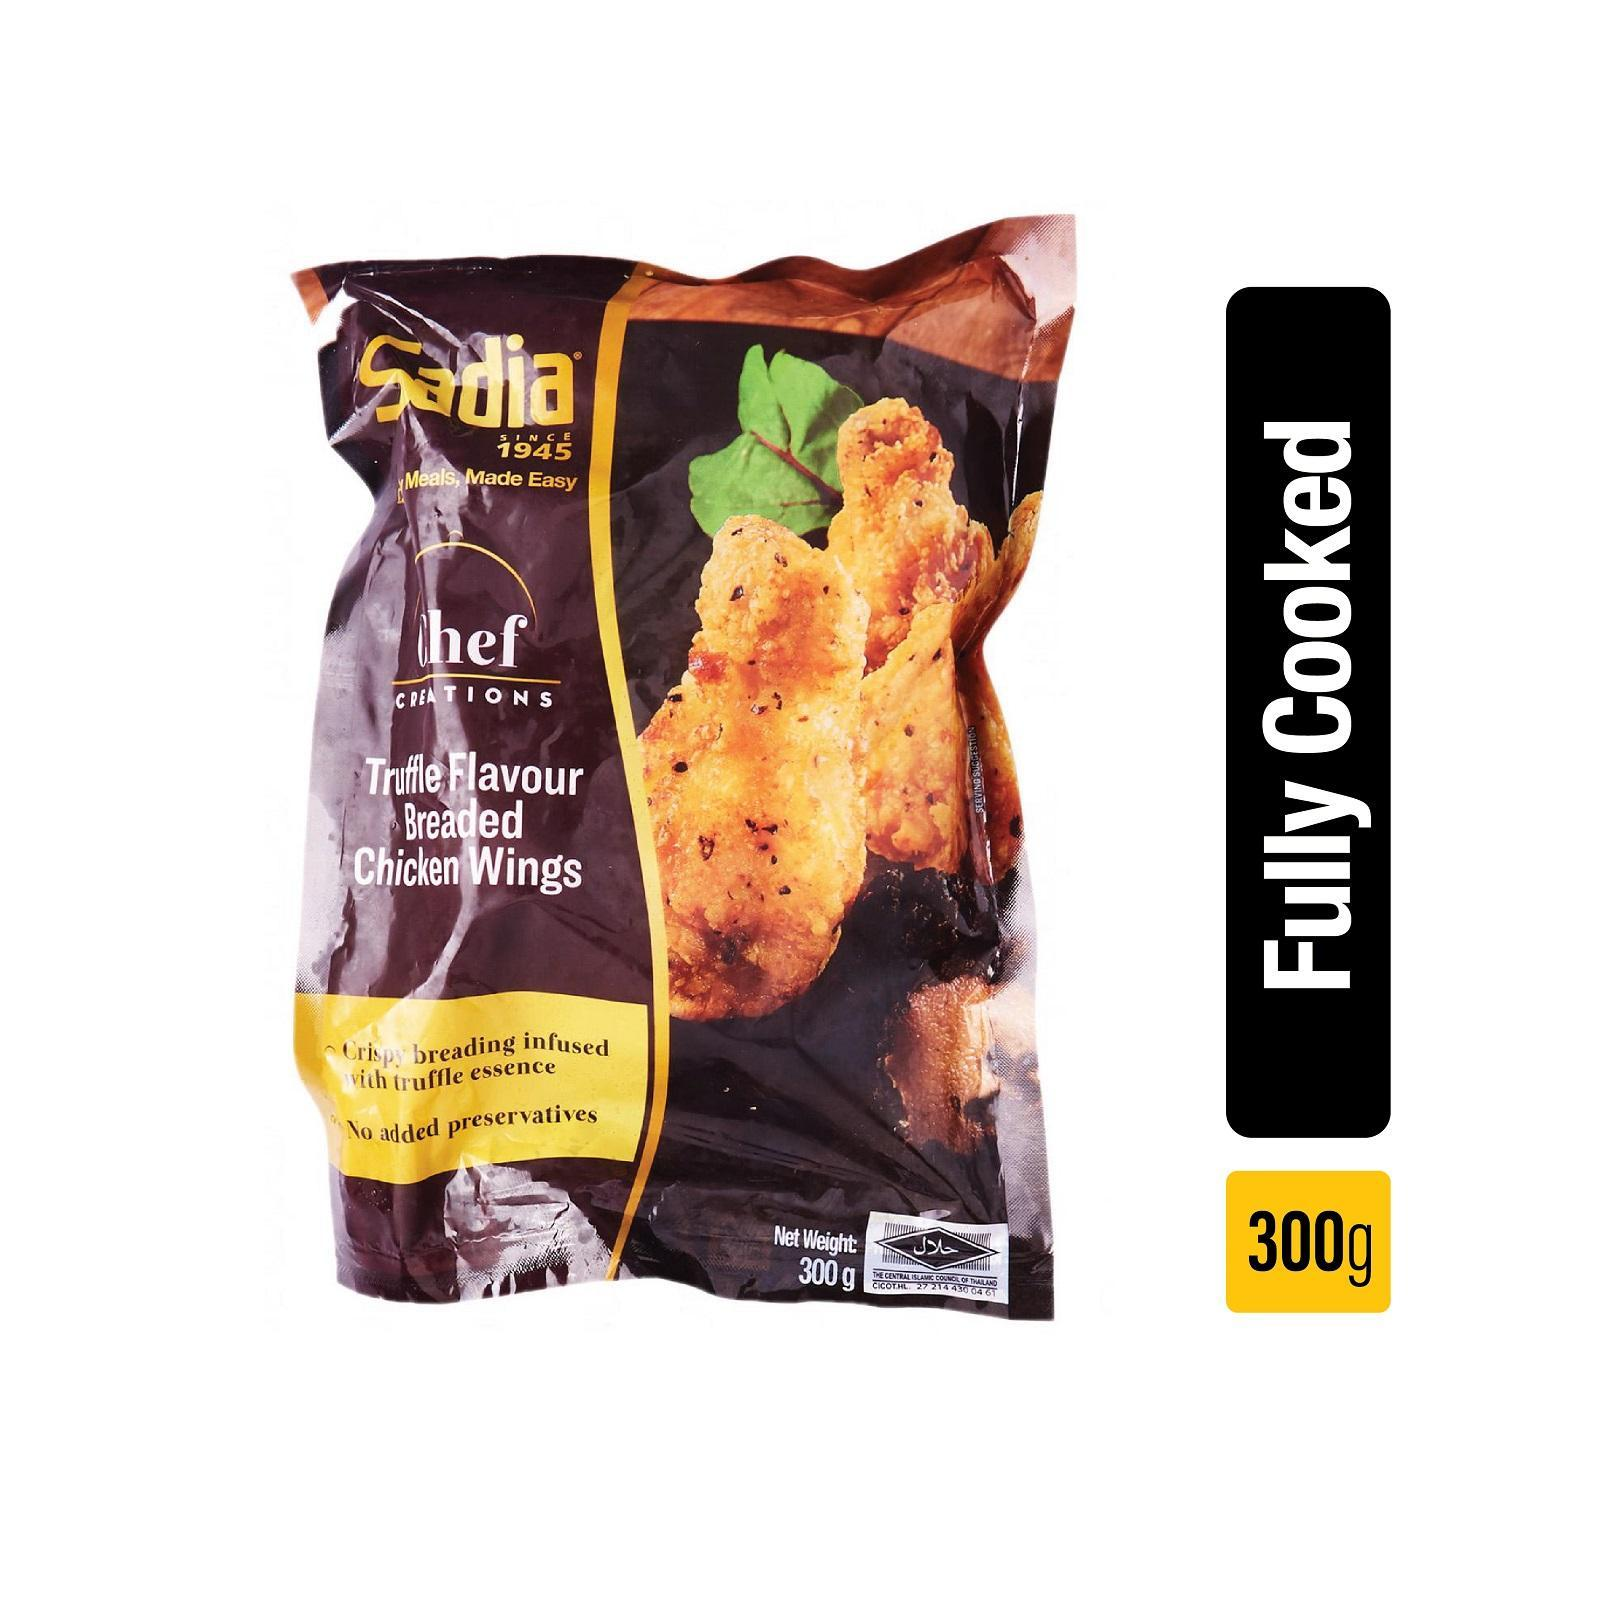 Sadia Truffle Flavoured Breaded Chicken Wings - Frozen